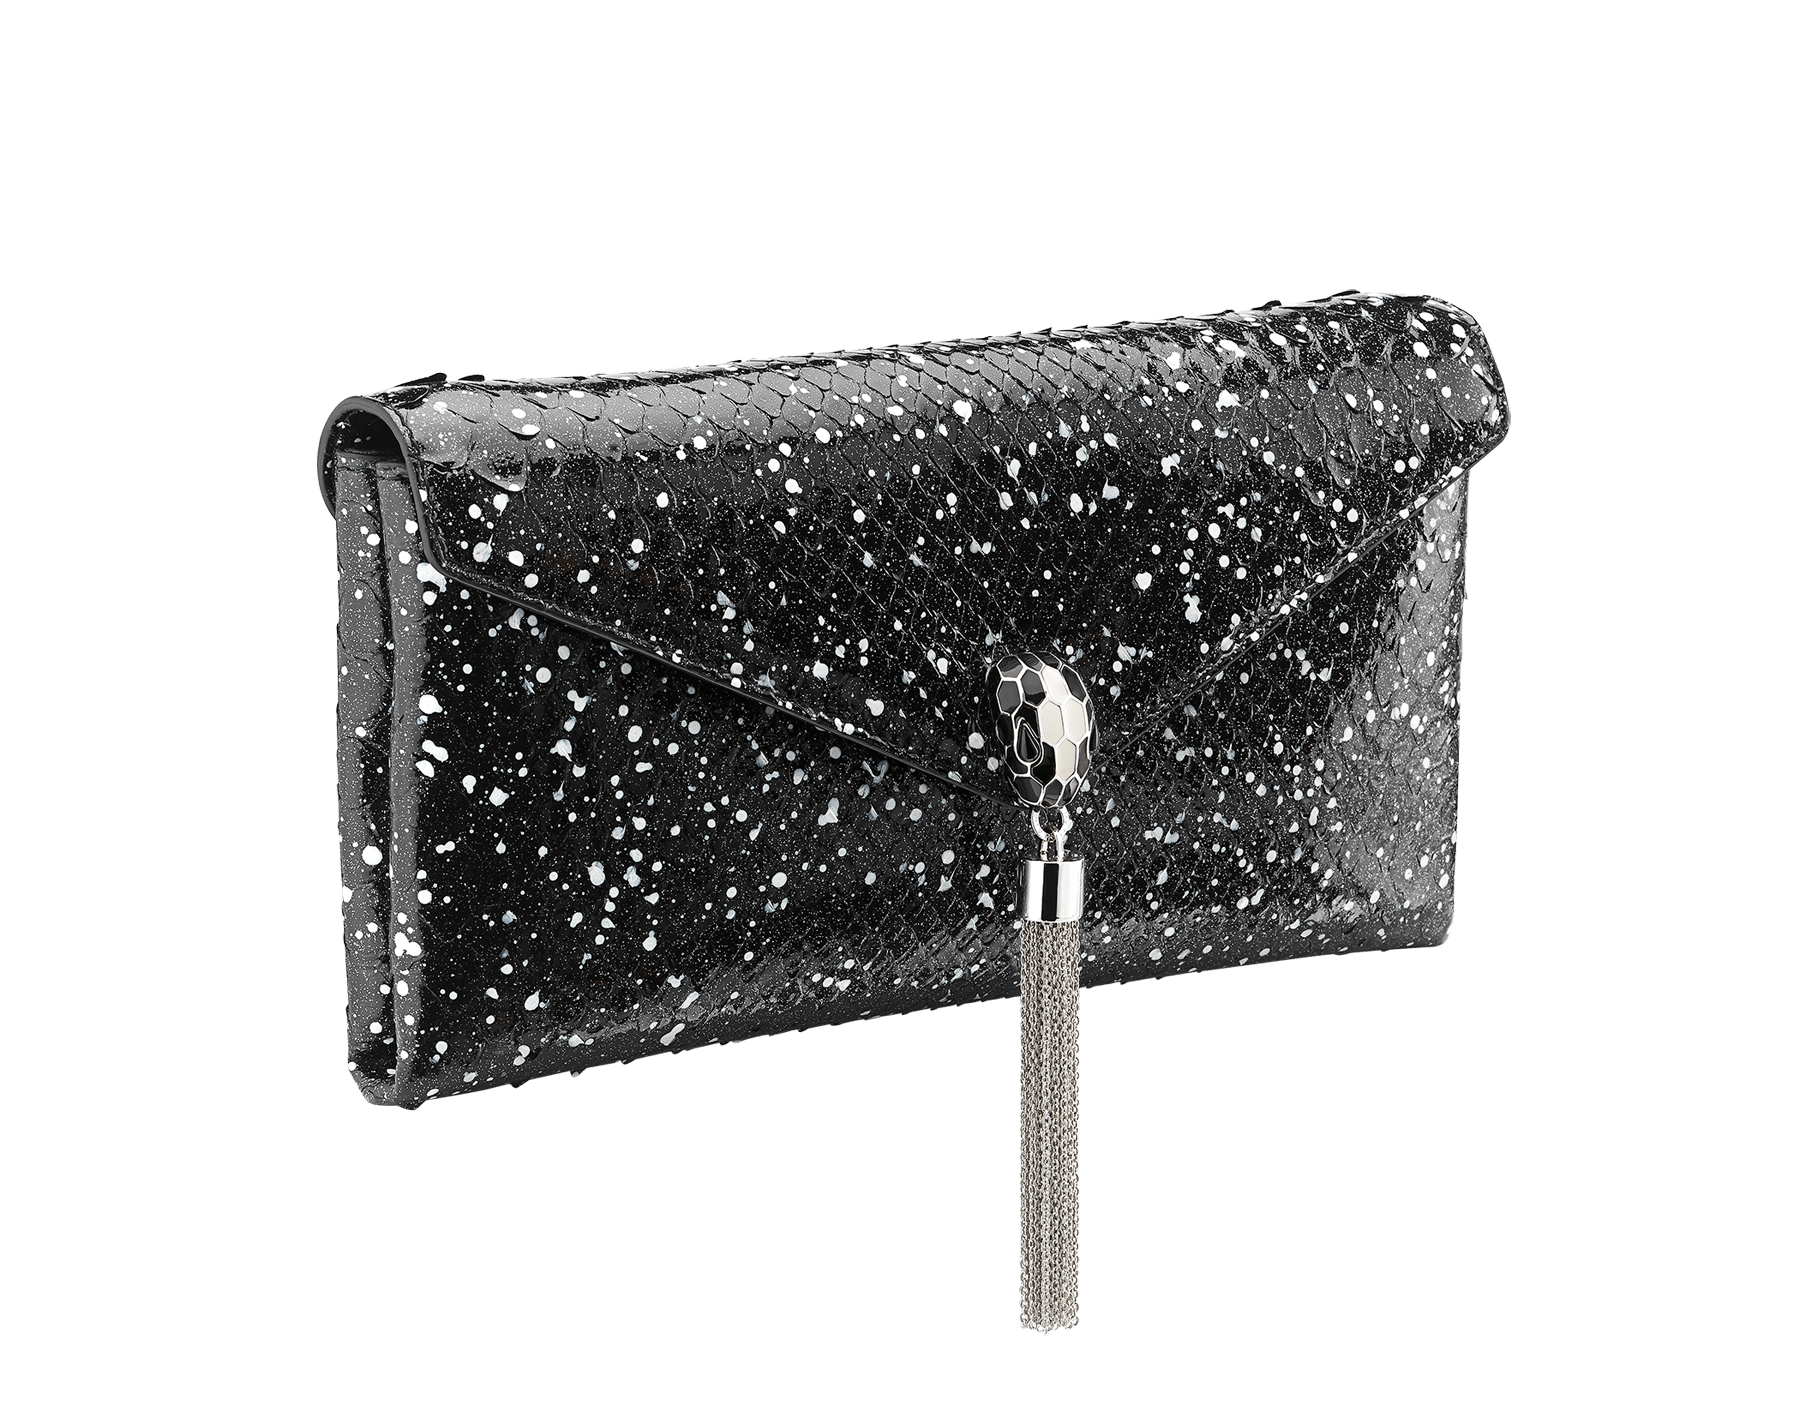 Serpenti evening clutch in black and white Cosmic python skin. Snakehead stud closure with tassel in palladium plated brass decorated with black and white enamel, and black onyx eyes. 288528 image 2